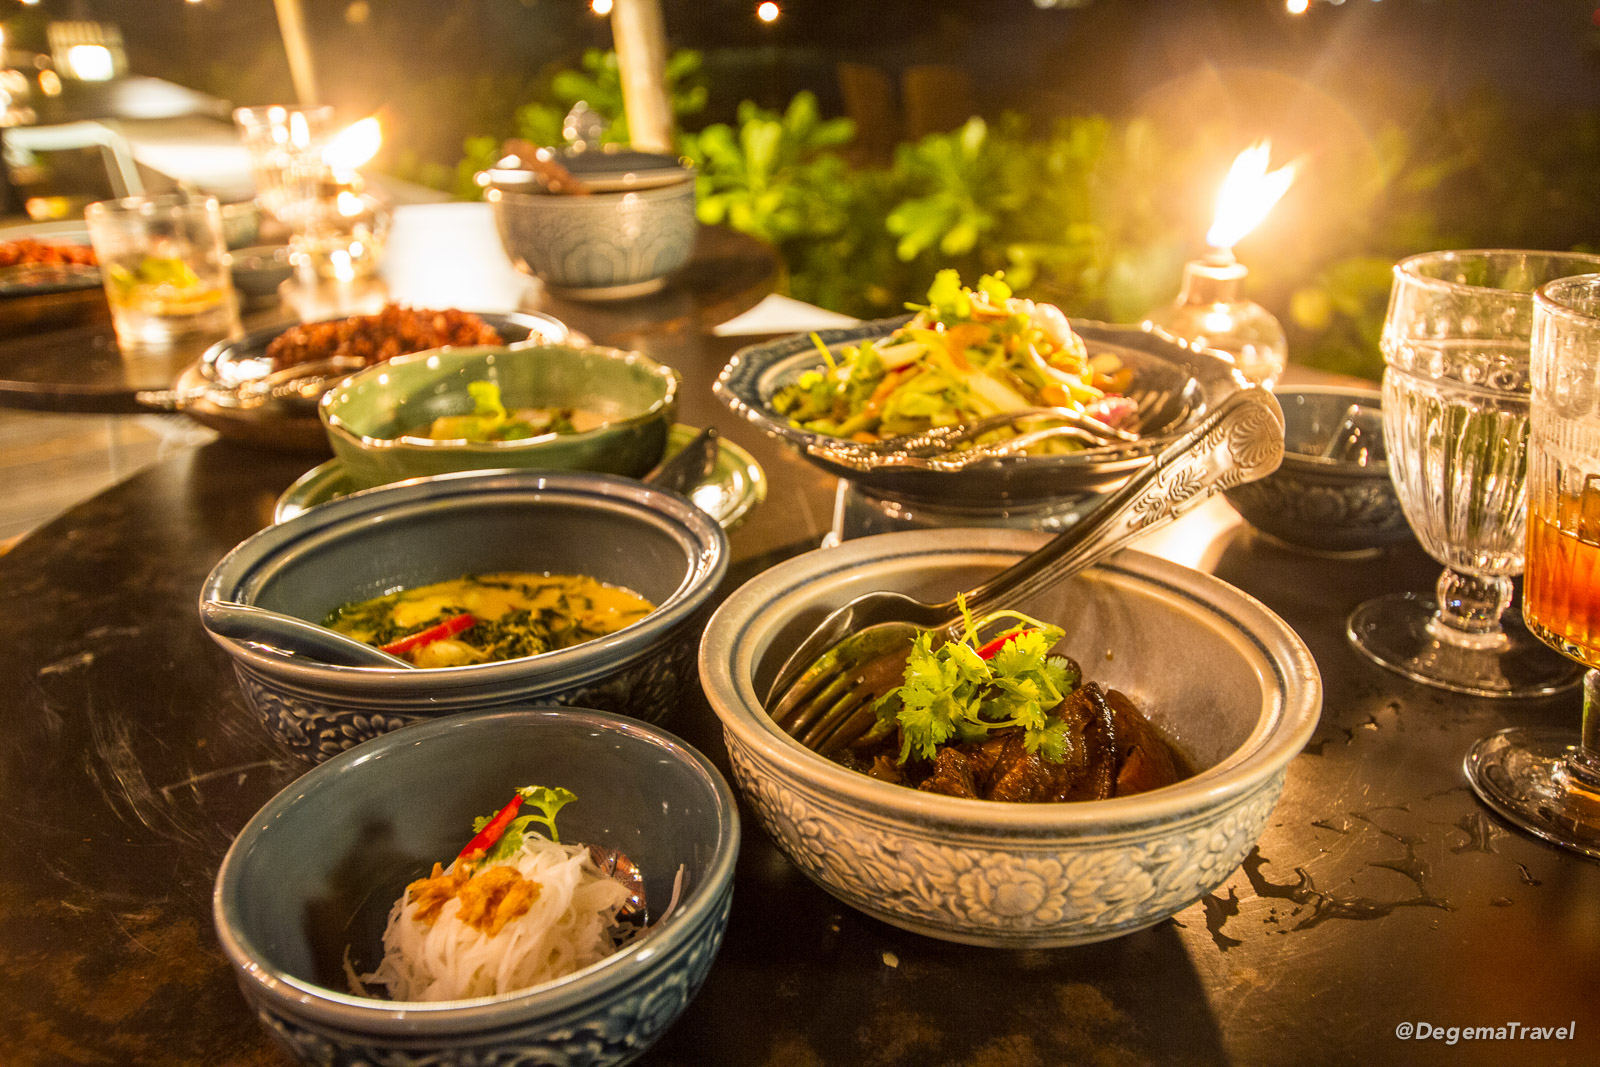 Thai food at Ta Khai Restaurant near Patong in Phuket, Thailand